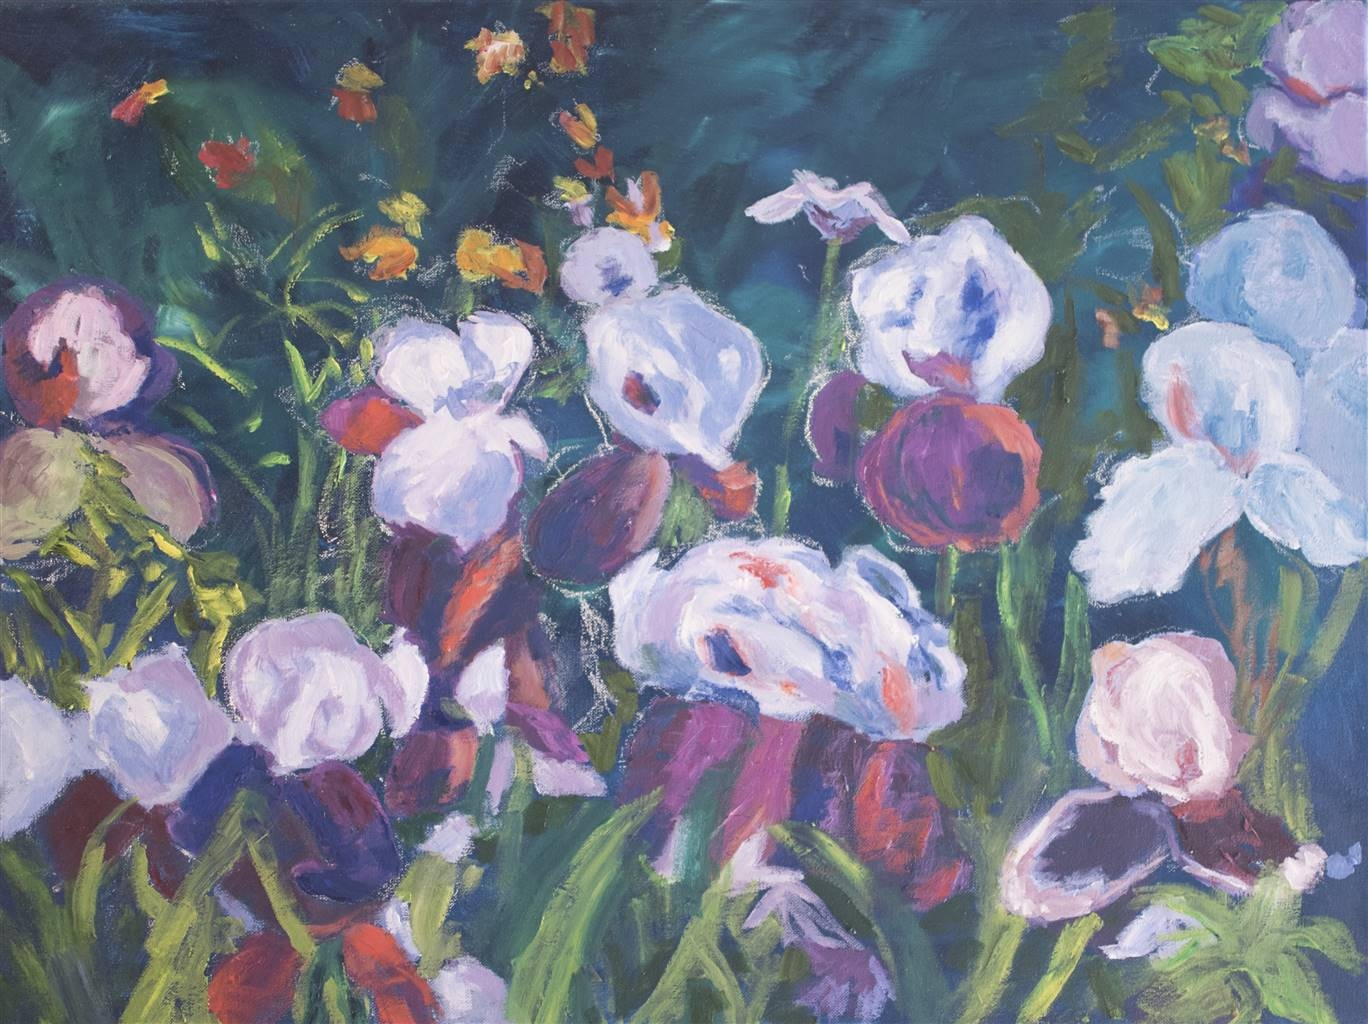 Margaret Adams, Iris Glade, Oil on Canvas, 18'' x 24'' image